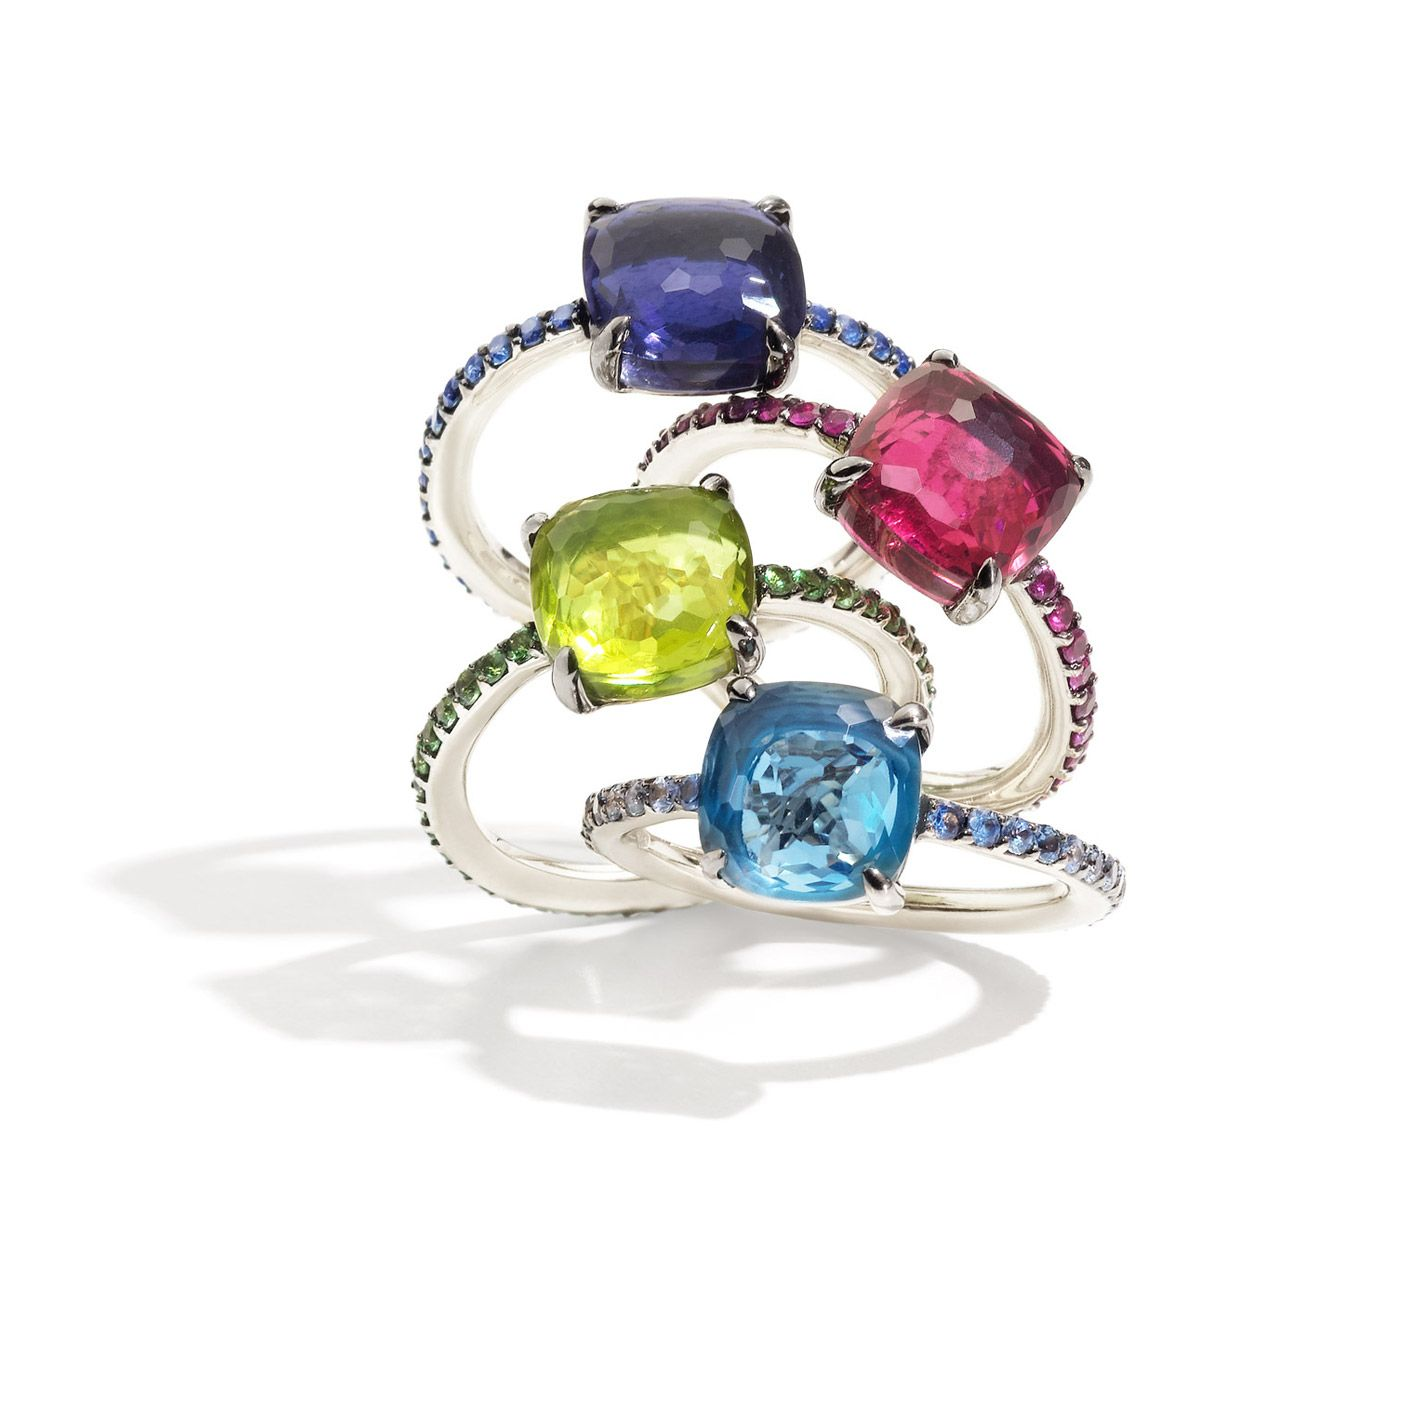 pieced crystals in cut determines sapphire stories adornment from story different mineral image what value mostly polished decoration are sizes catawiki and gemstone for used shapes a of inline the jewellery gemstones